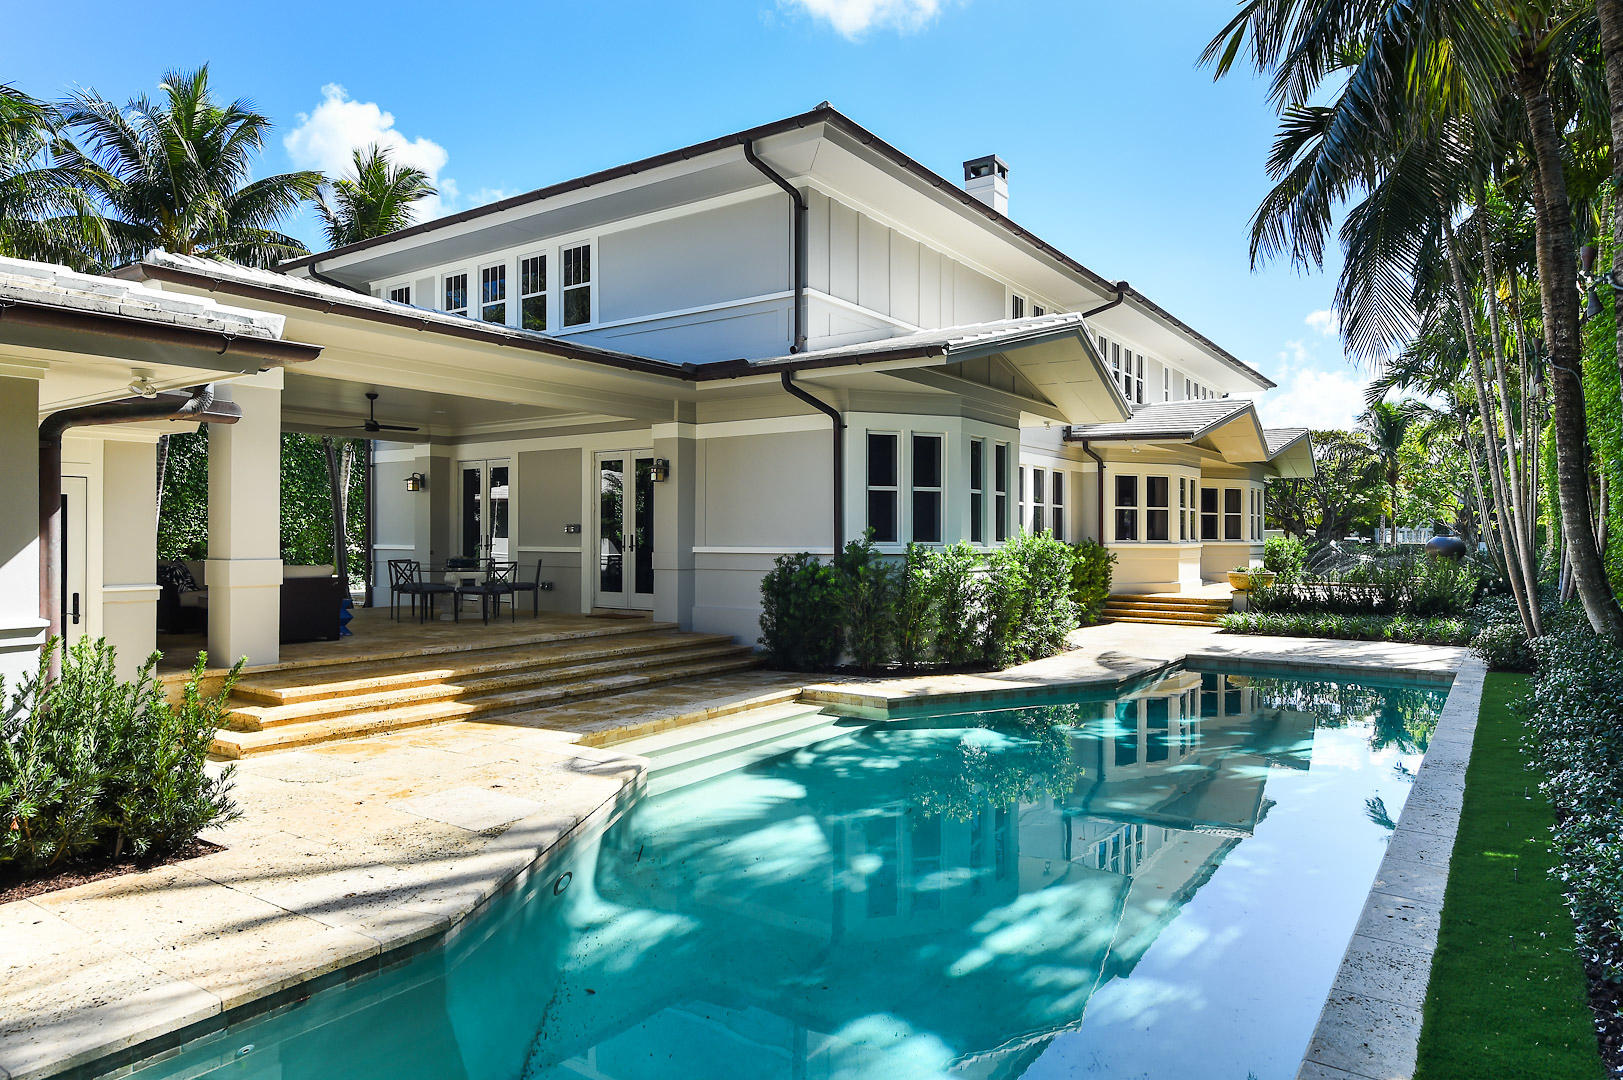 New Home for sale at 113 Clarke Avenue in Palm Beach